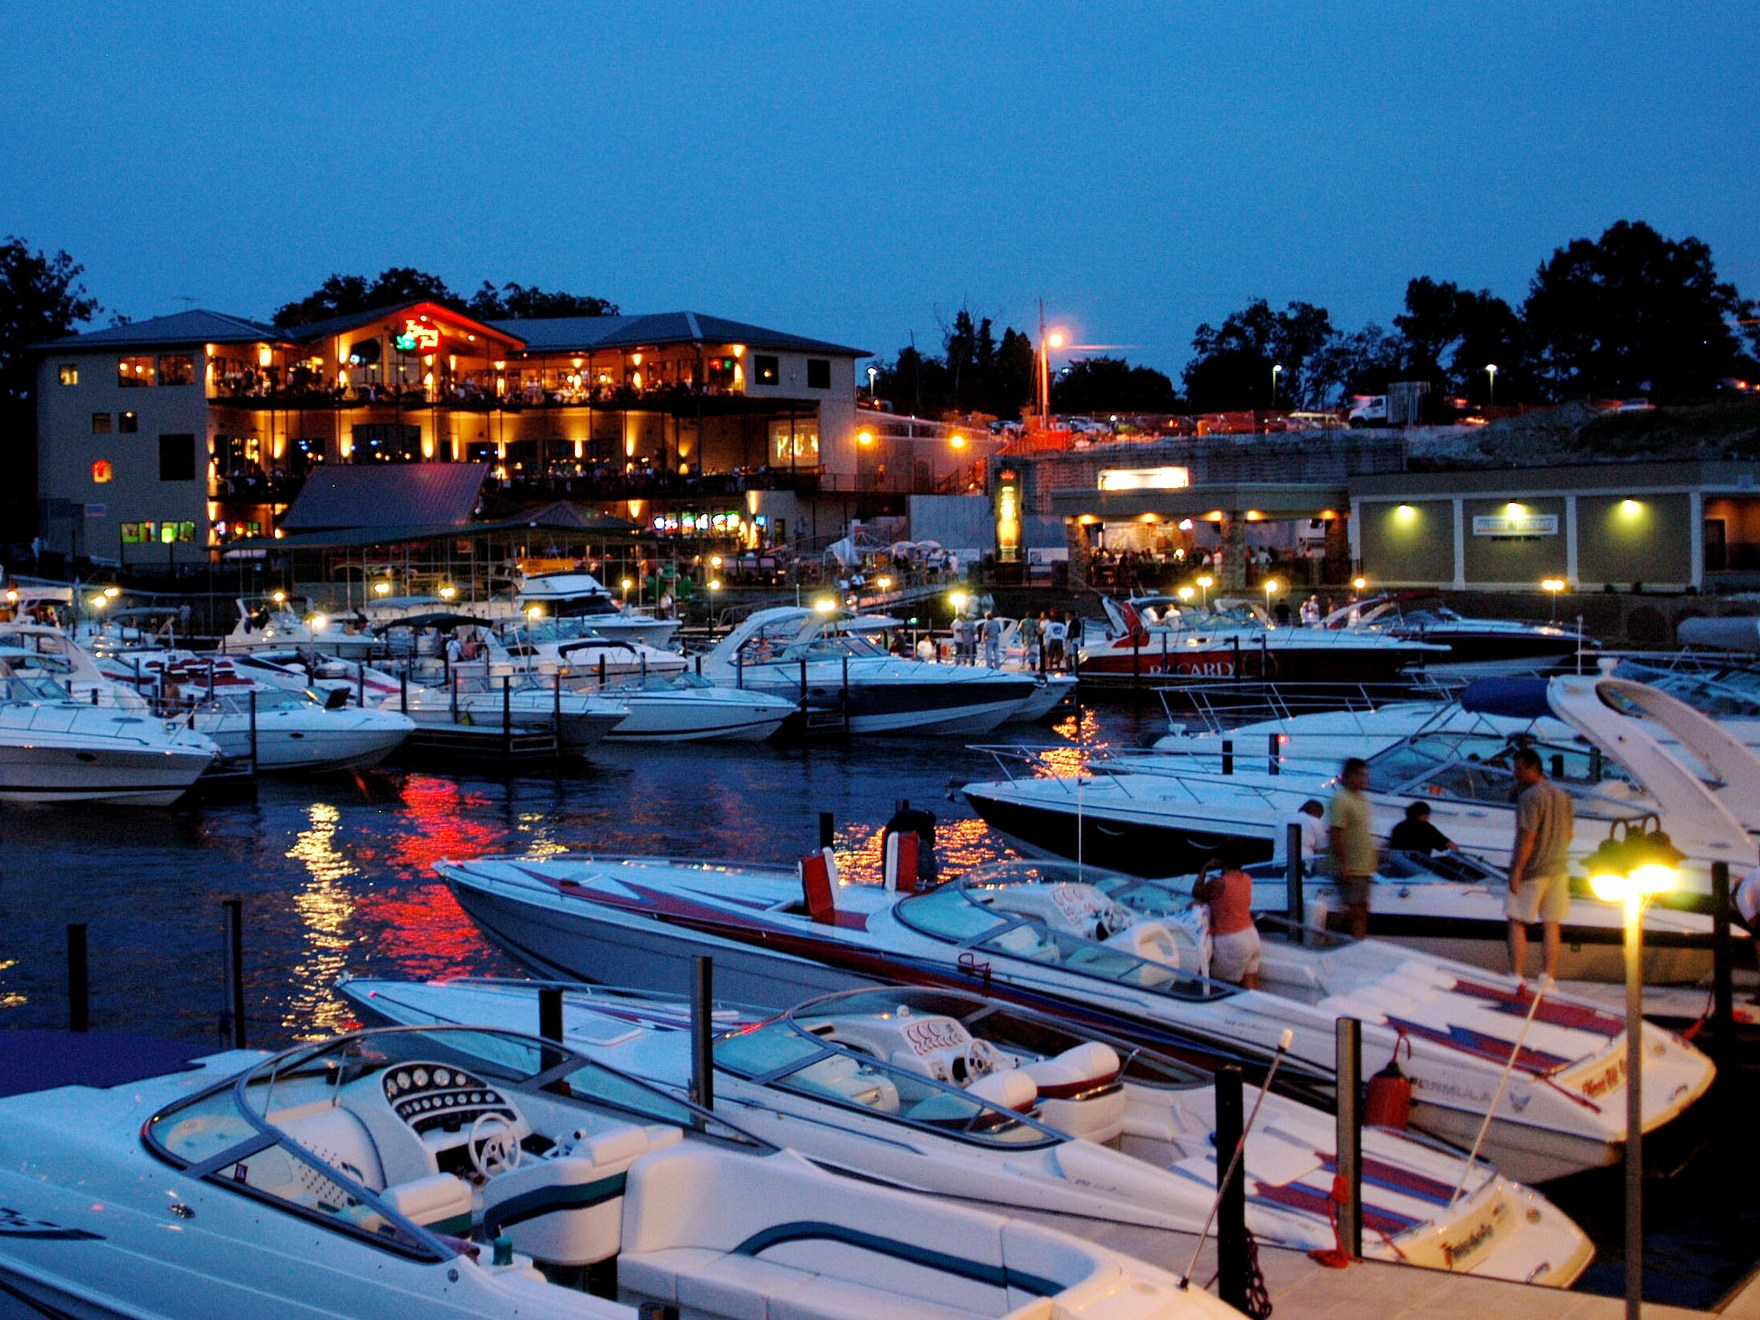 Camden On The Lake Resort Spa Amp Yacht Club Announces New Ownership Newswire